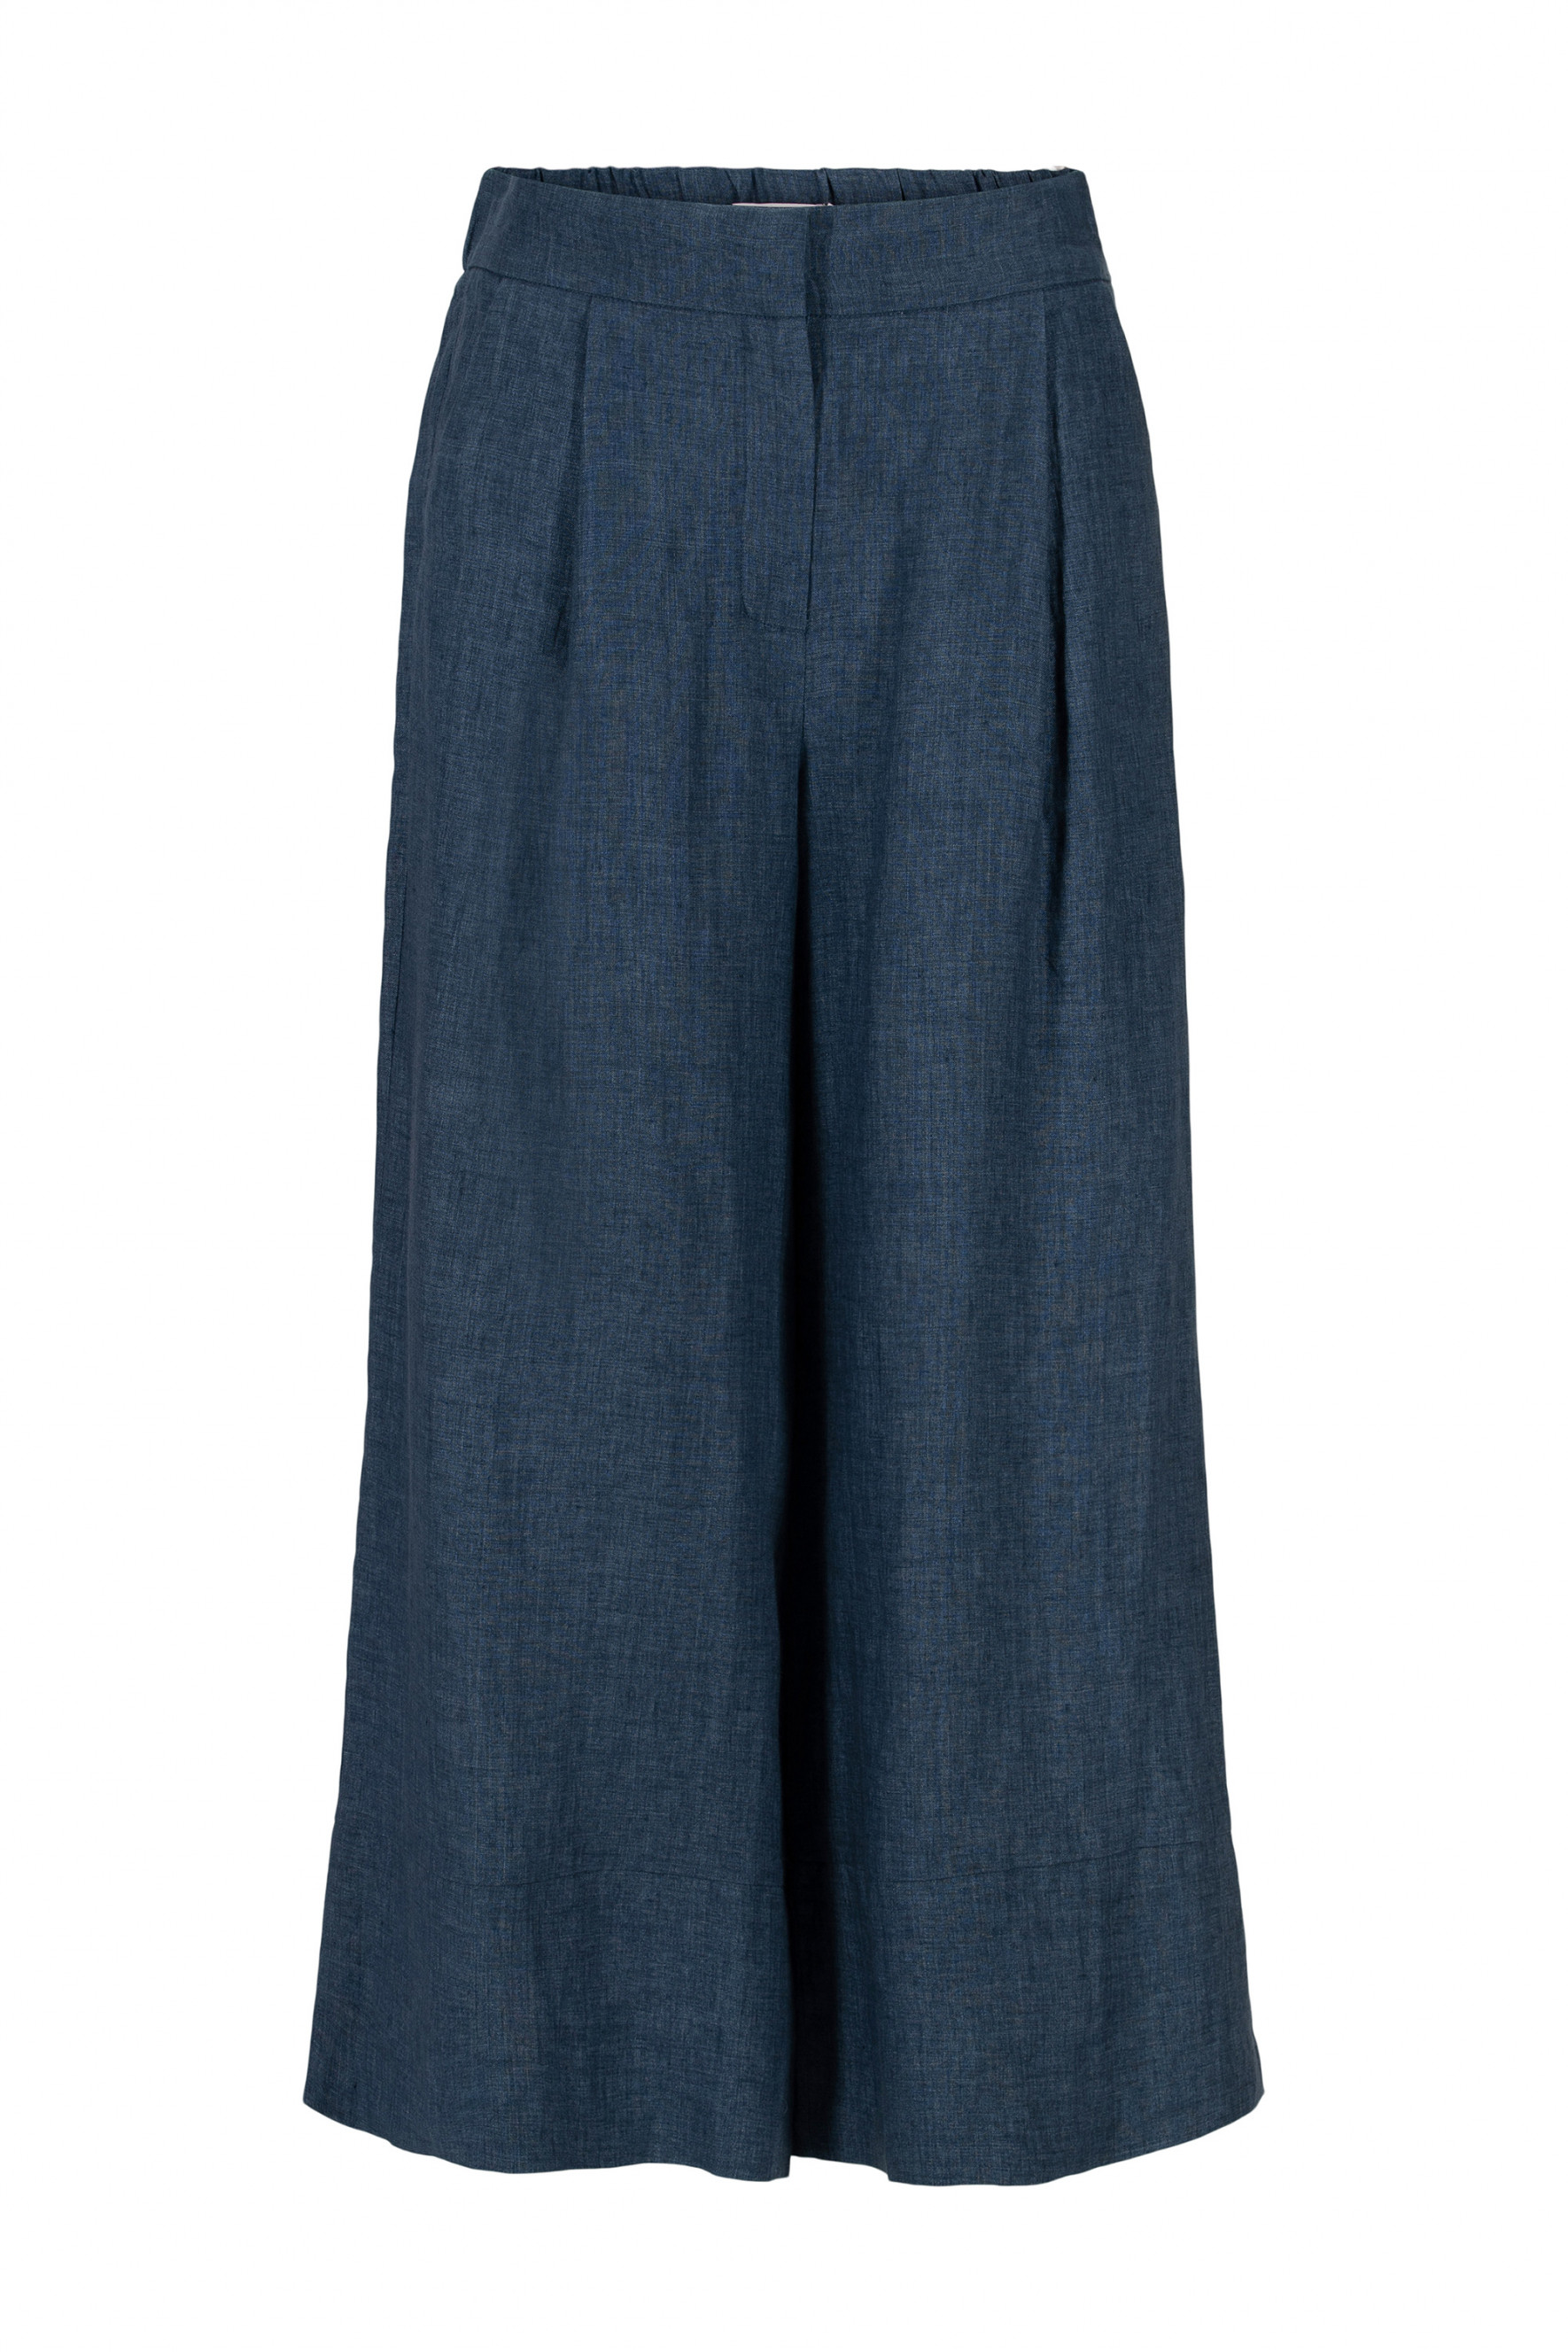 The port henry linen trousers